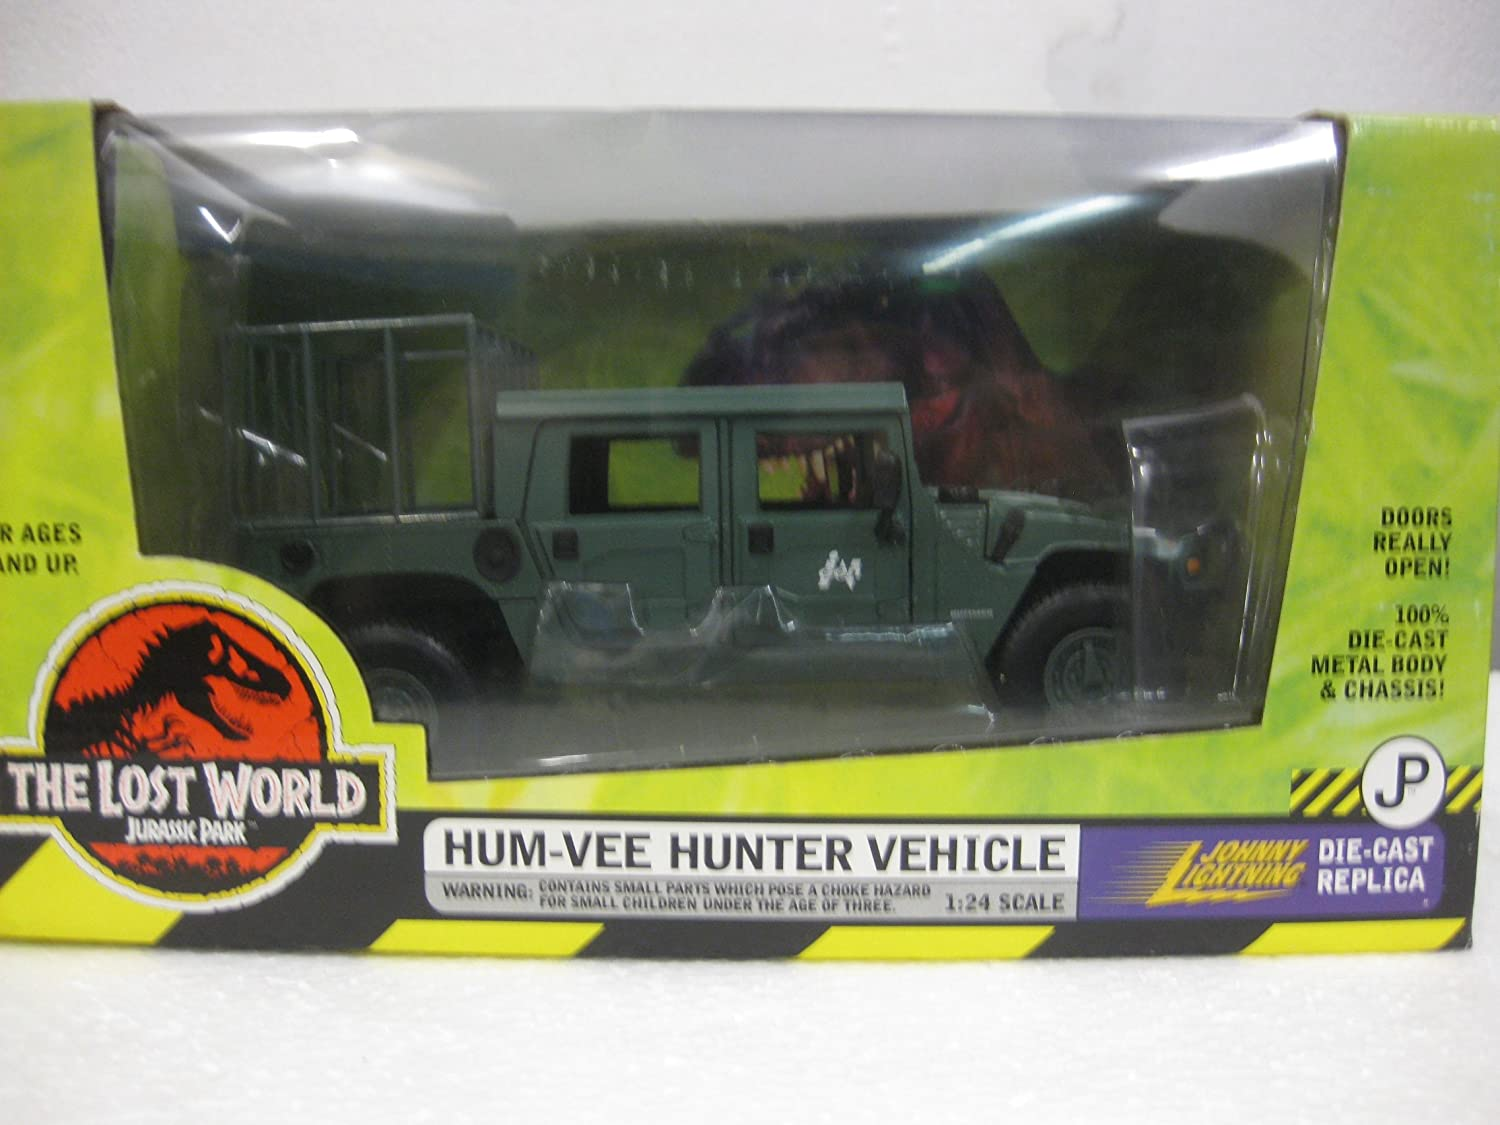 Jurassic Park The Lost World Hum-Vee Hunter Vehicle by diecast 164 scale